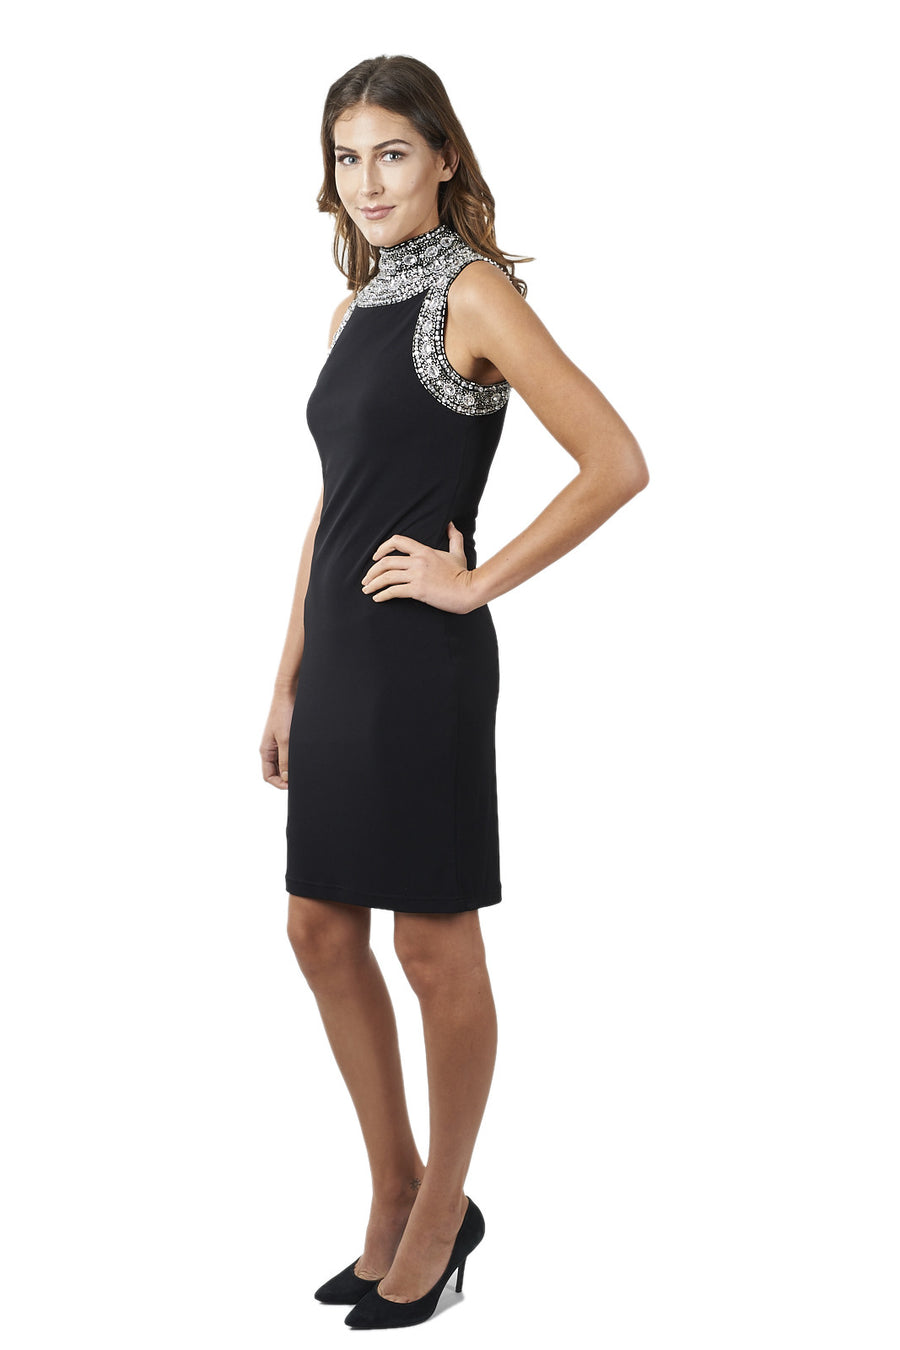 Halter Dress with Jewel Accents